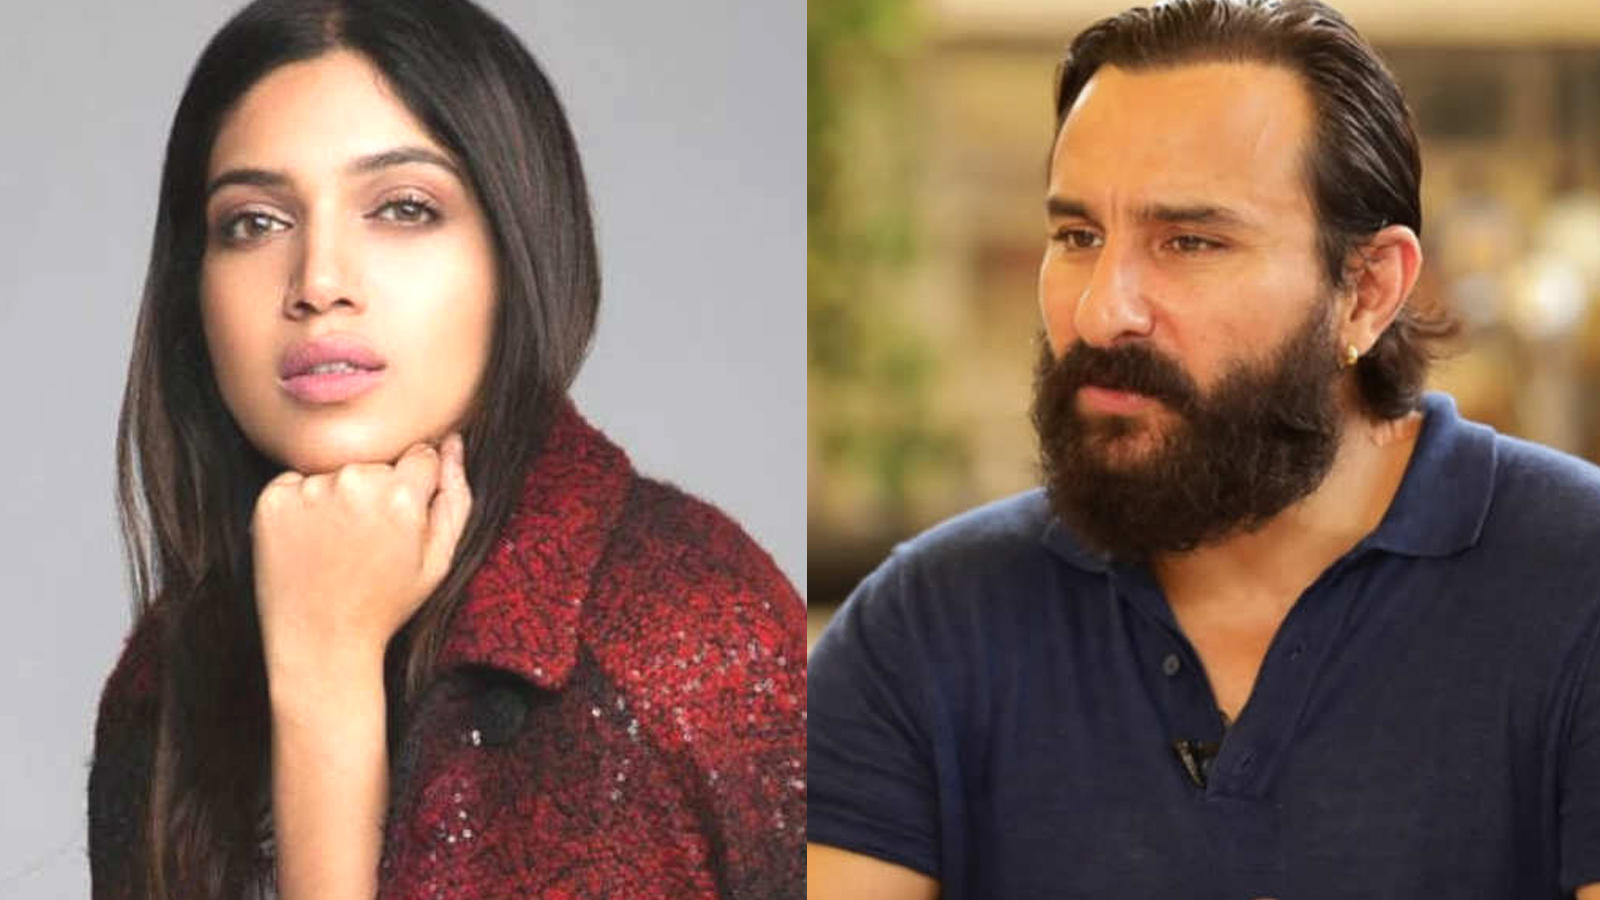 Saif Ali Khan, Bhumi Pednekar urge people to cast their votes